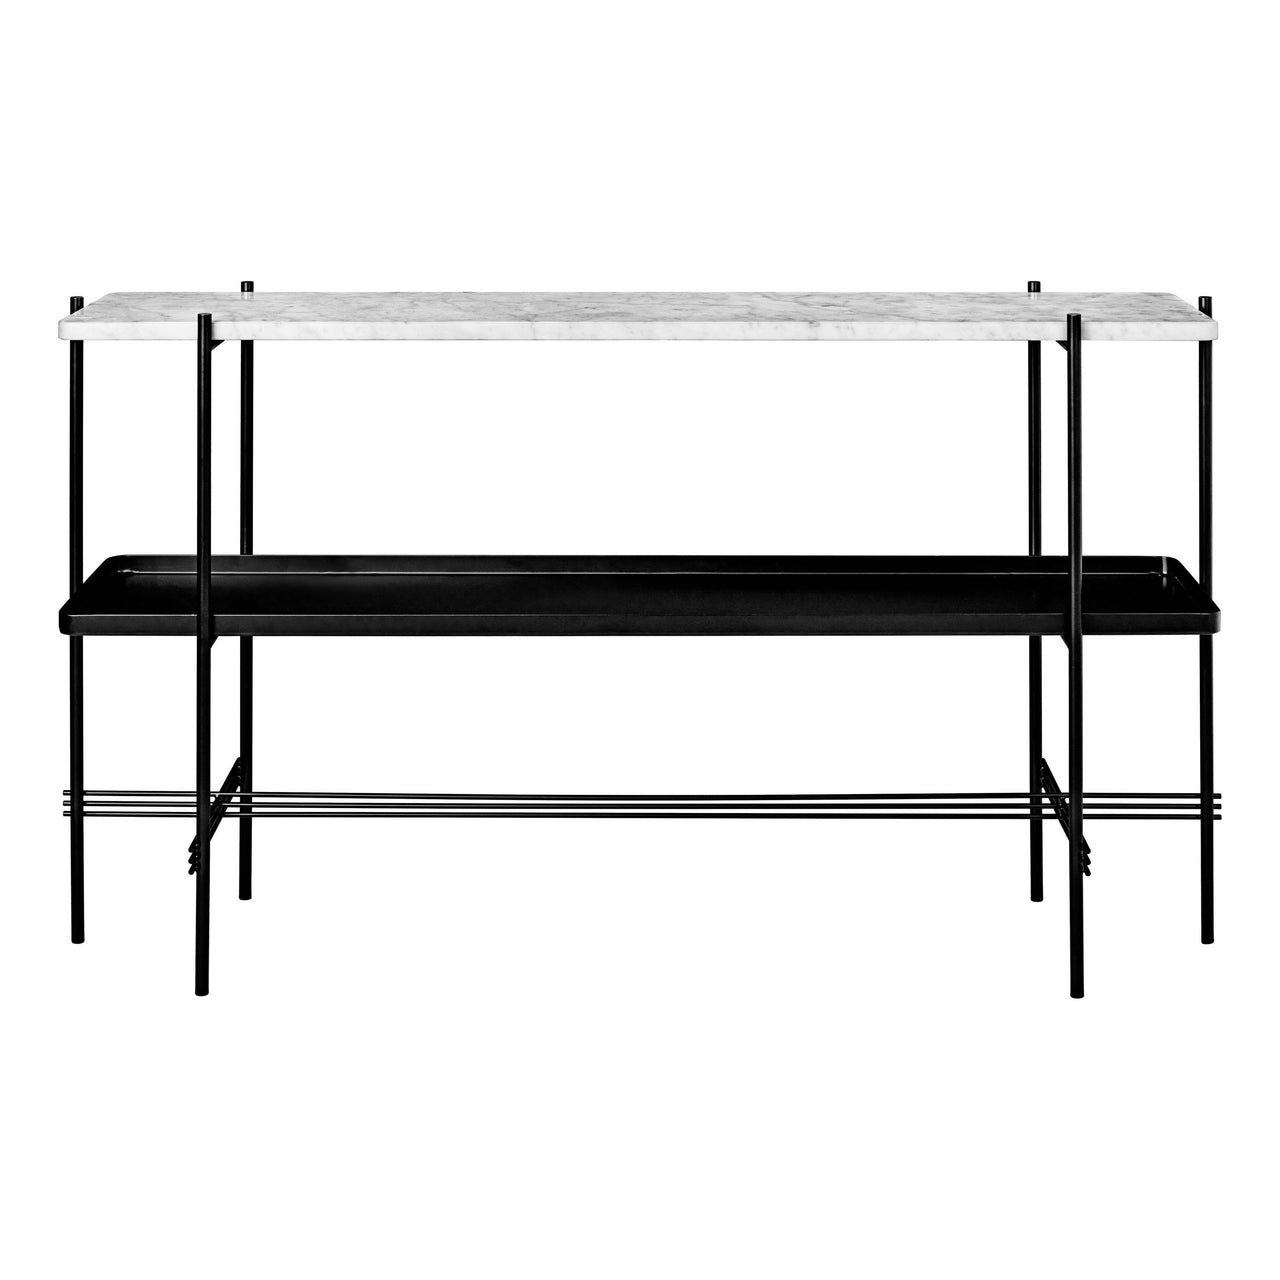 TS Console: 2 Racks + Tray + Black Base + White Carrara Marble